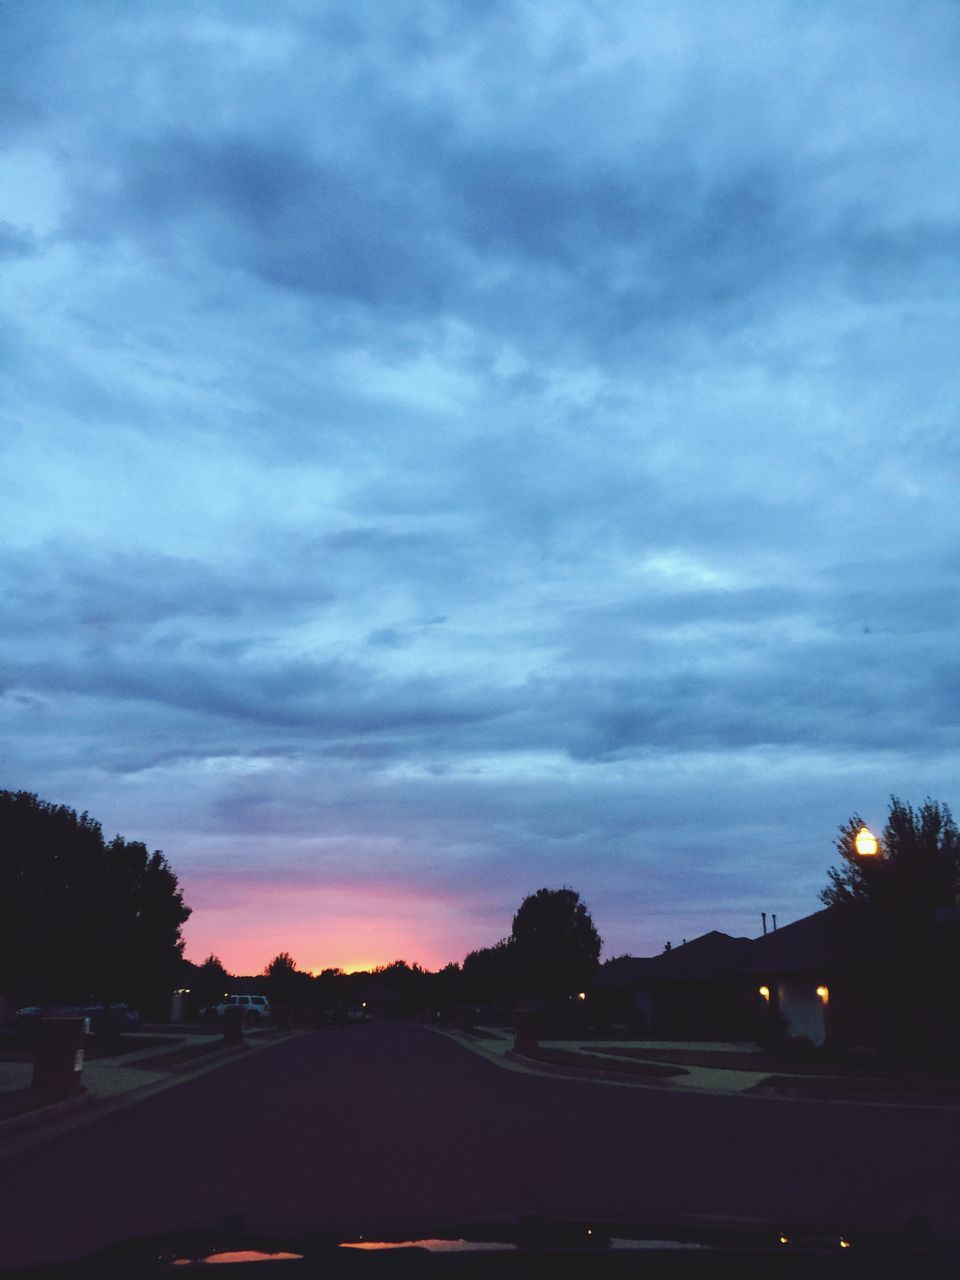 sky, cloud - sky, tree, scenics, sunset, silhouette, no people, car, nature, road, beauty in nature, tranquil scene, outdoors, day